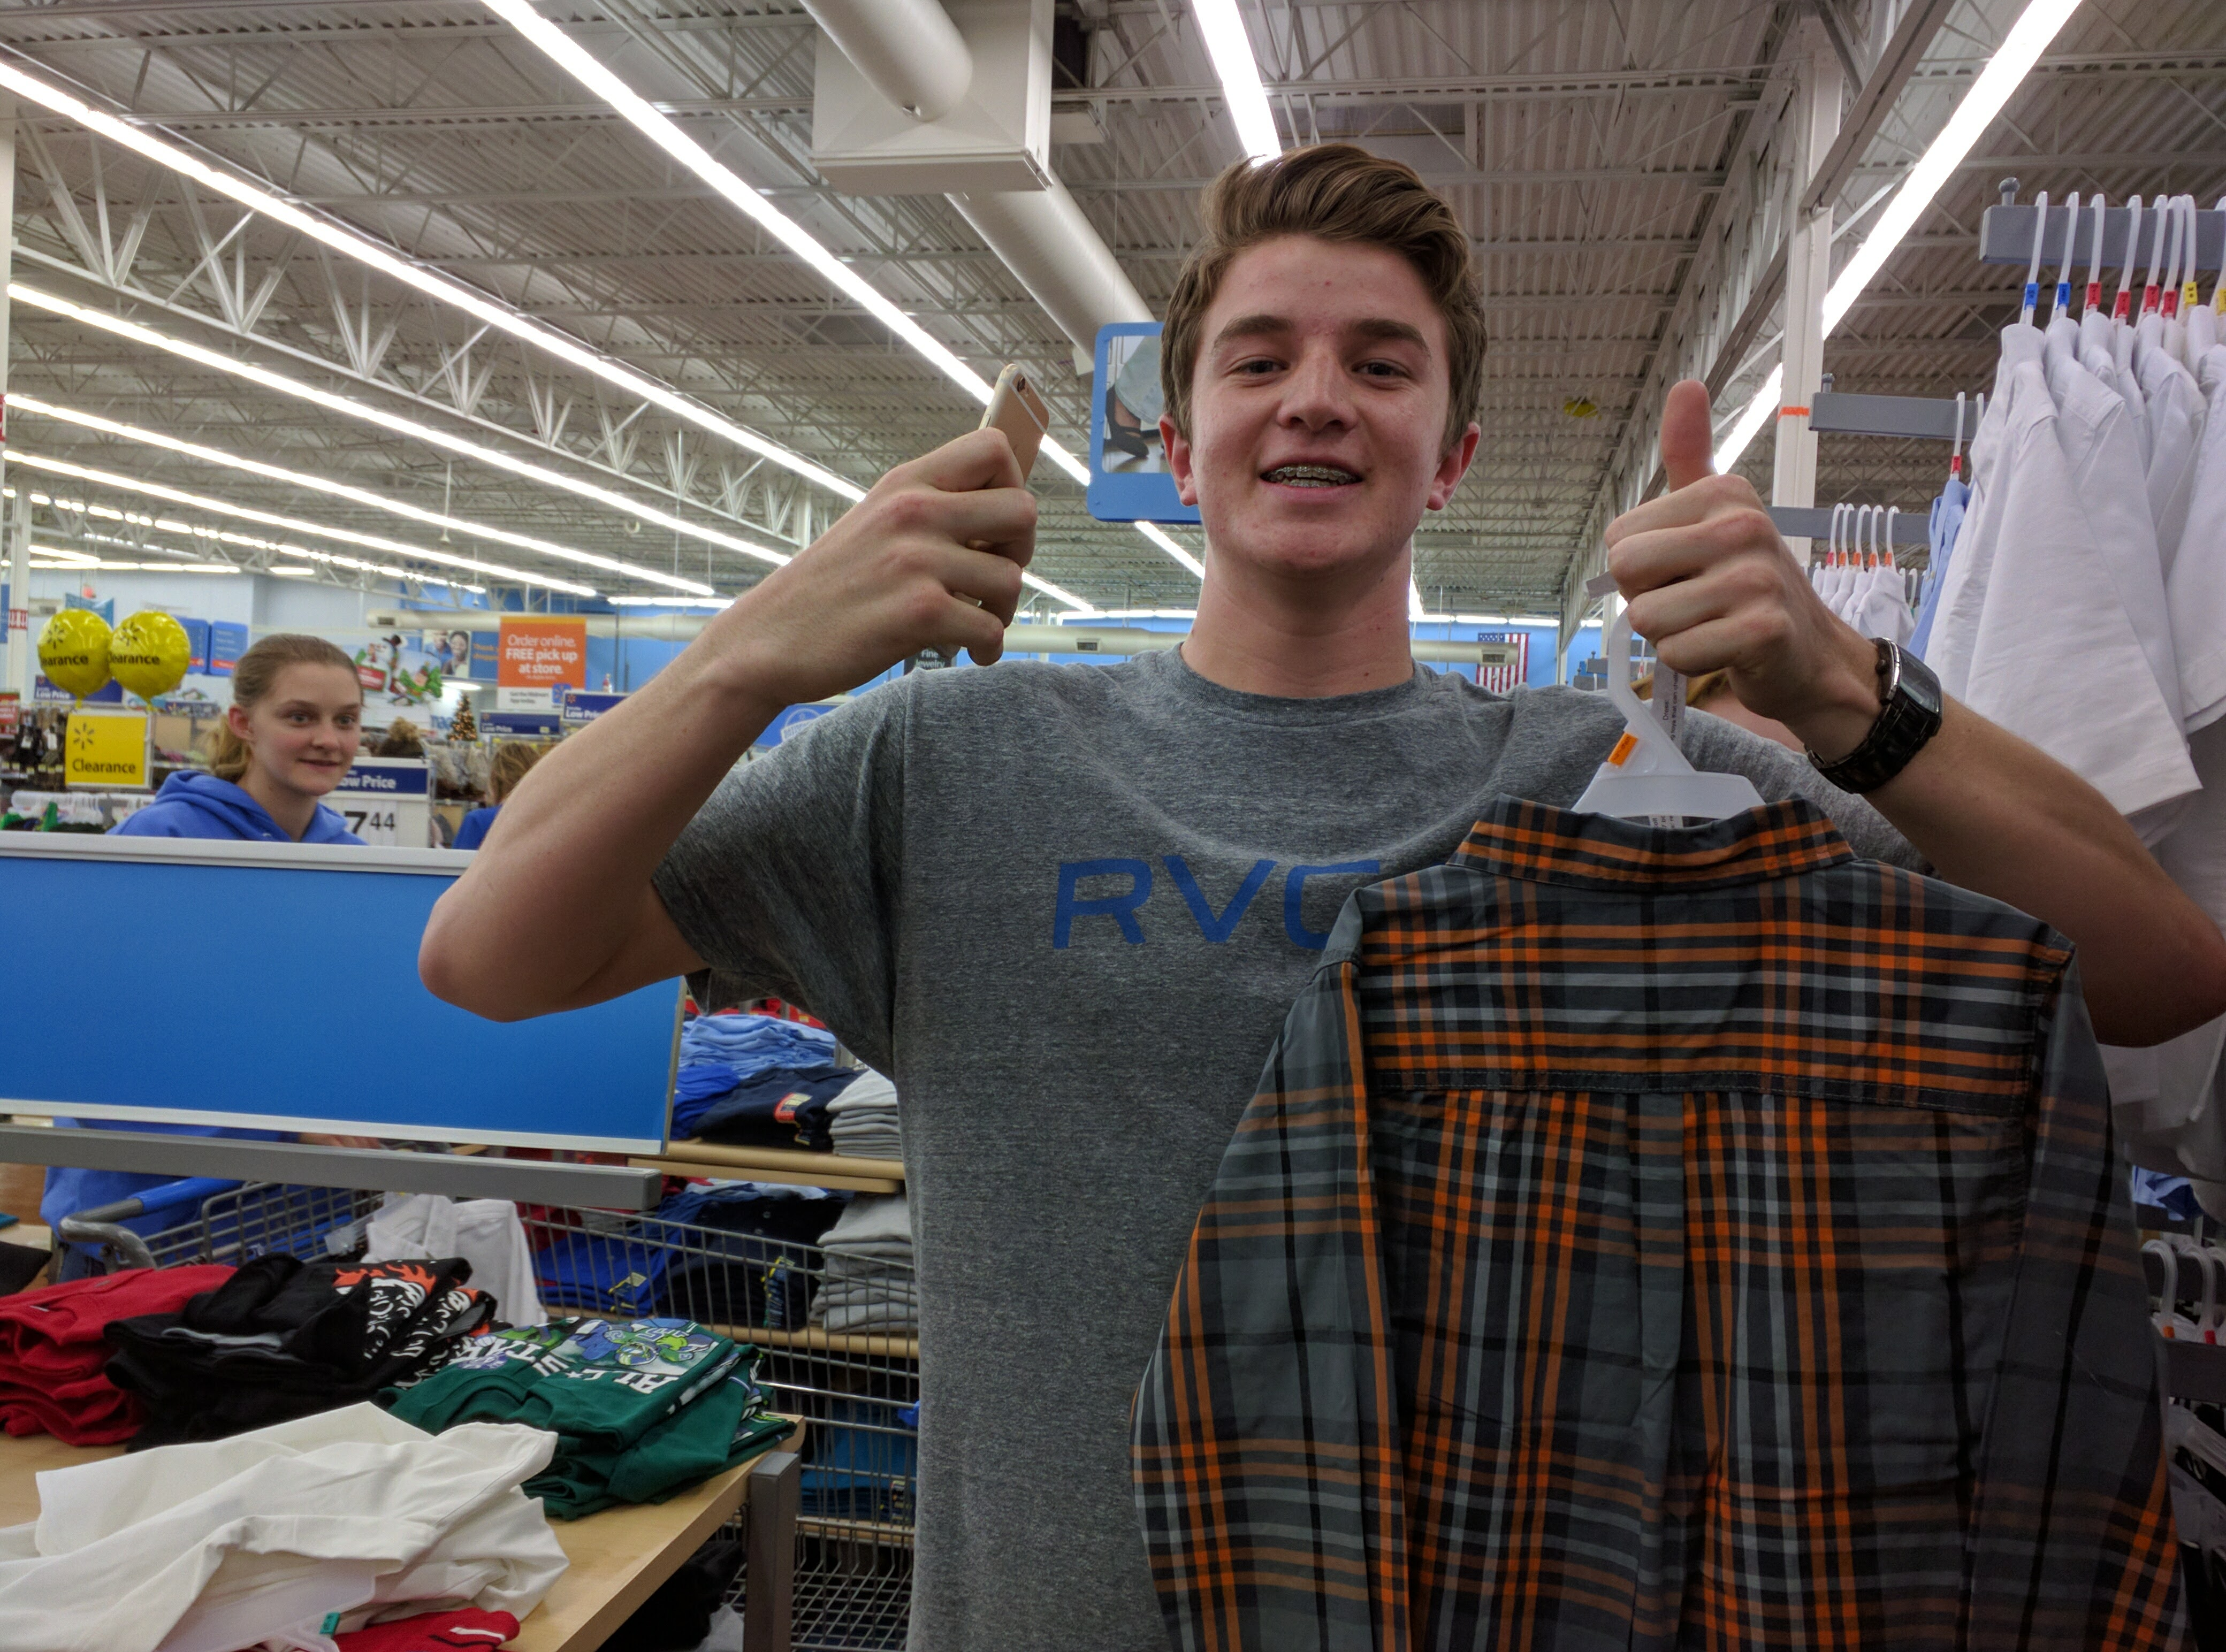 Dixie High School student Tanner Hansen shops for the school's Angel Tree project, St. George, Utah, Dec. 12, 2016 | Photo by Joseph Witham, St. George News